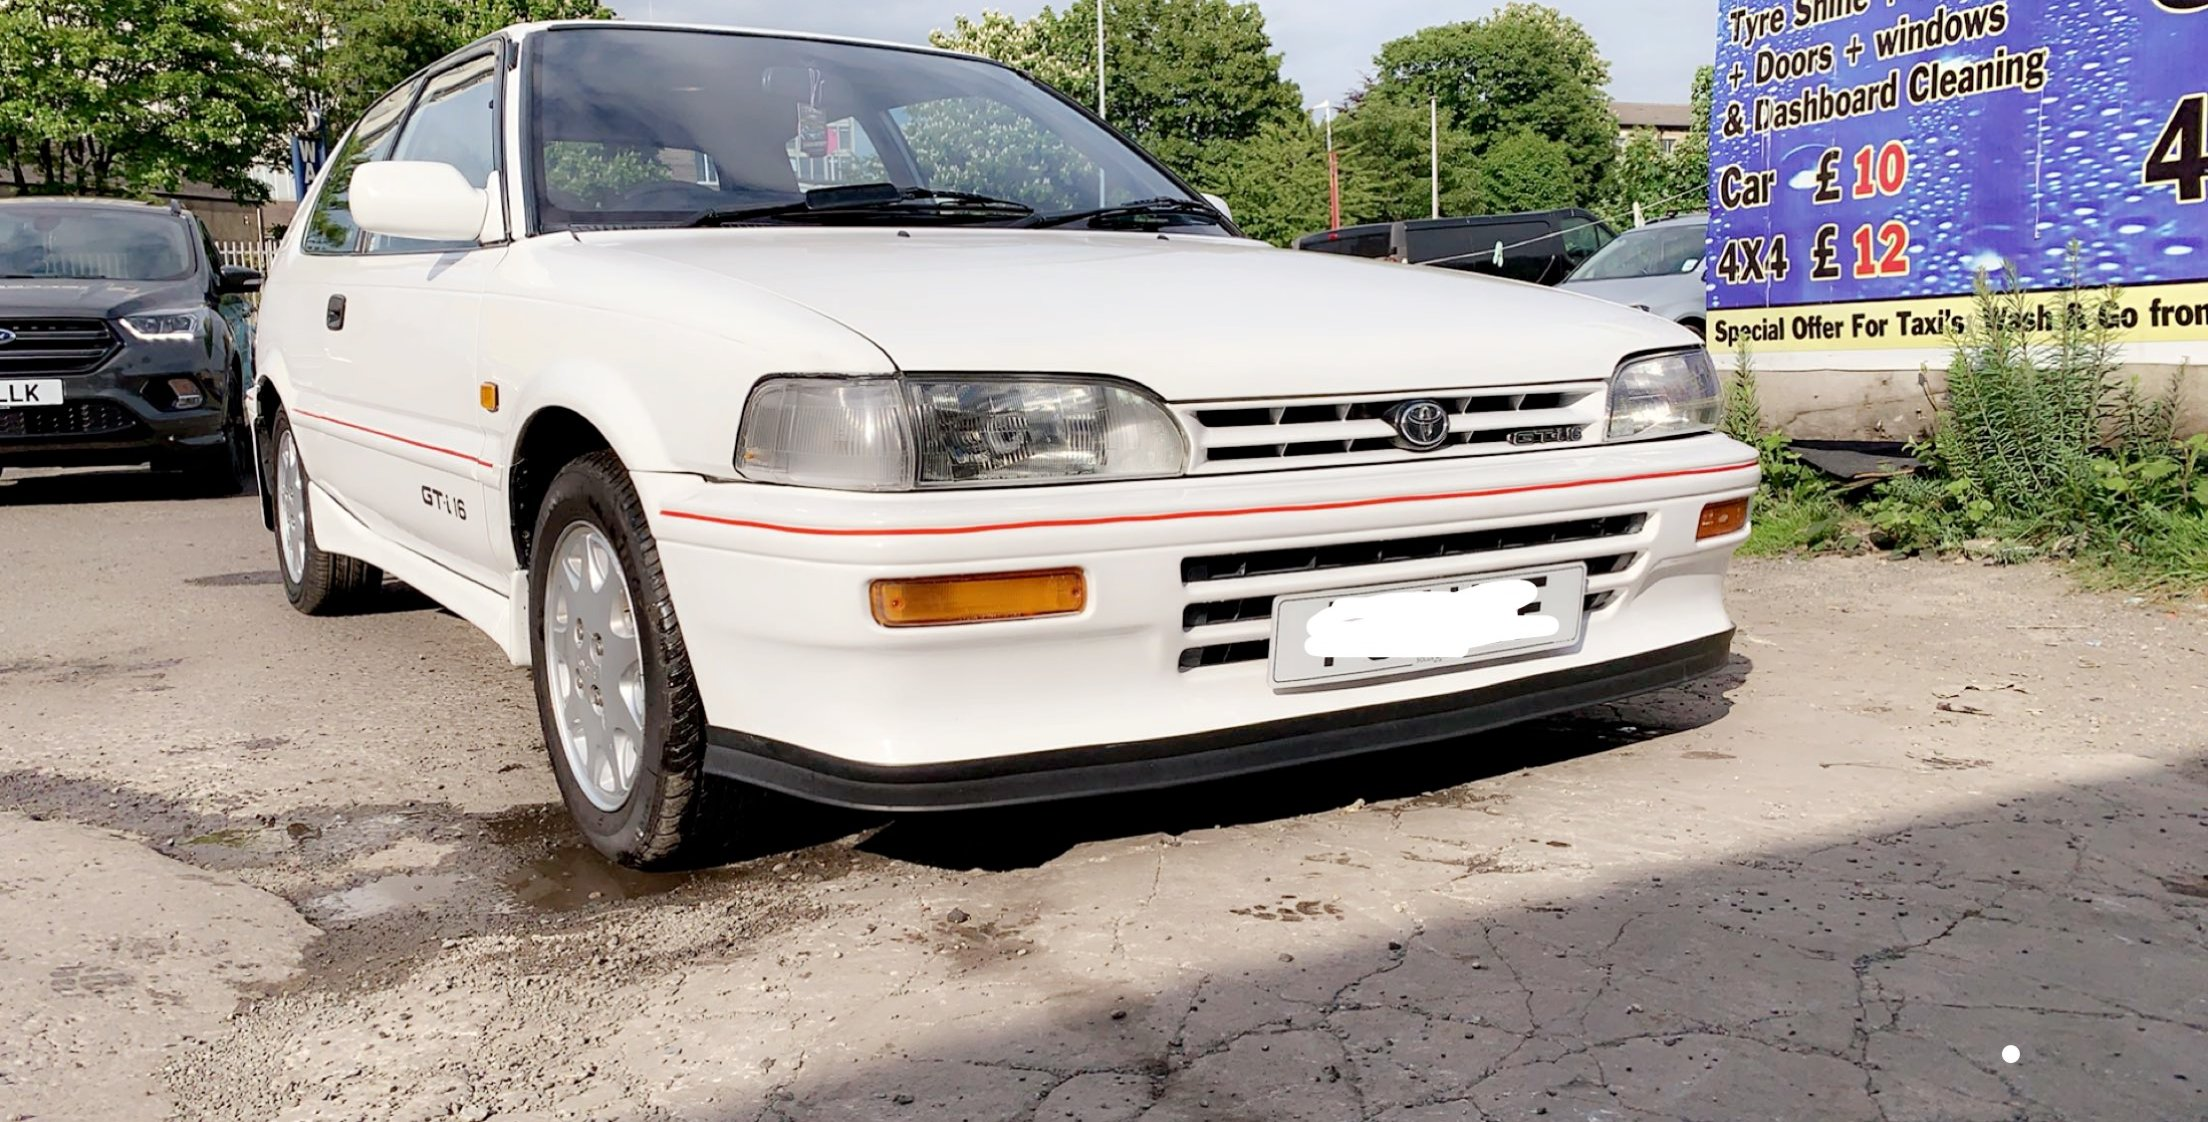 1989 Toyota Corolla Gti Twin Cam immaculate Condition For Sale (picture 3 of 6)